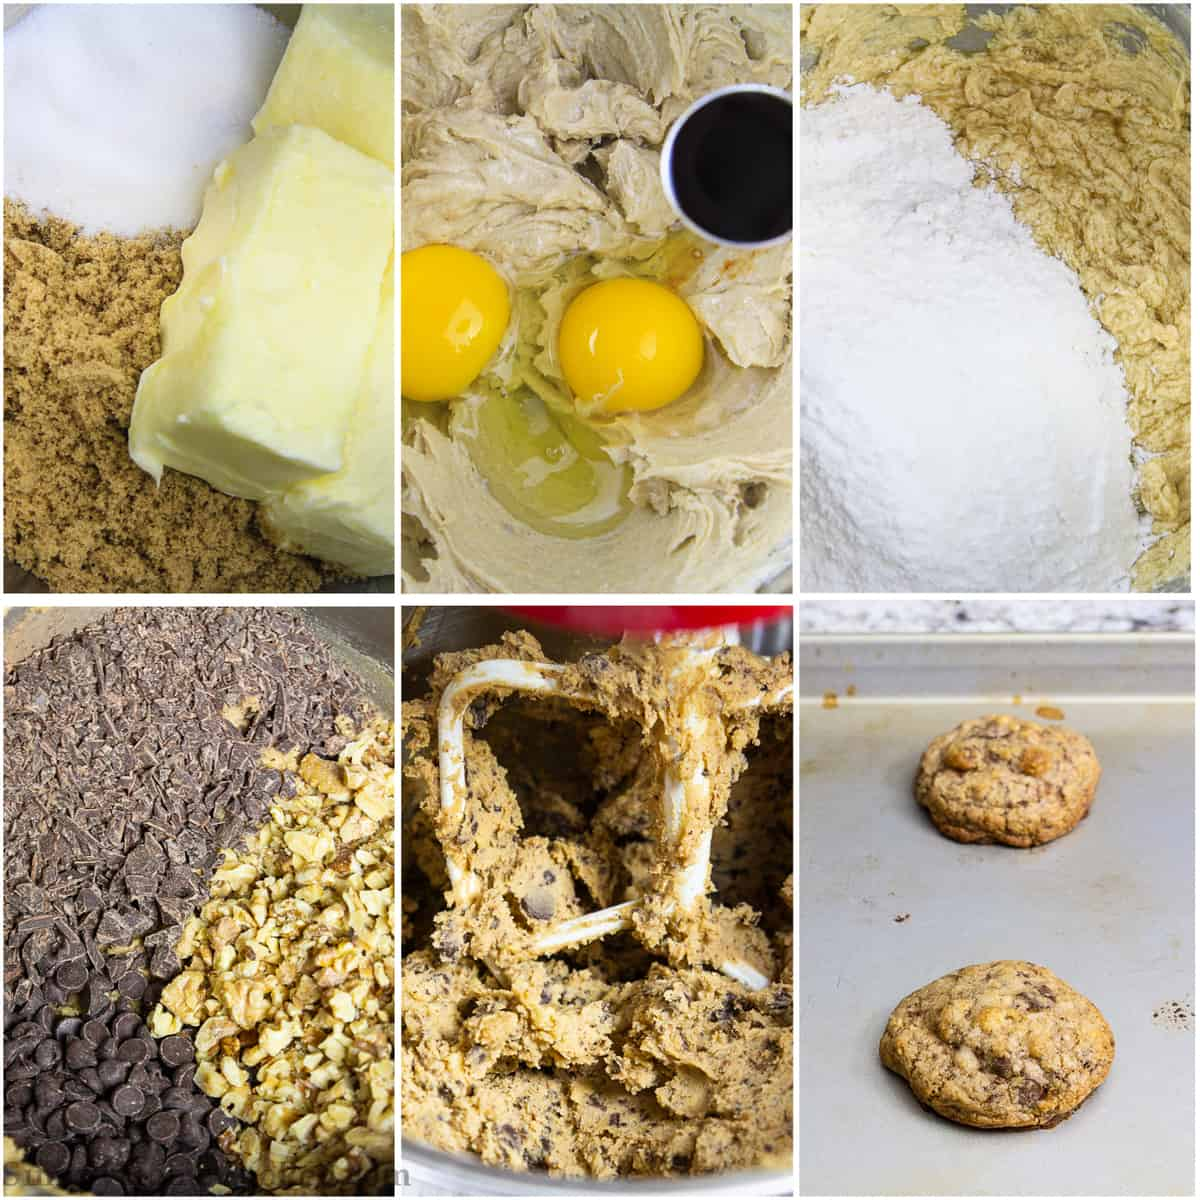 Step by step photo tutorial on mixing dough together for chocolate chip walnut cookies